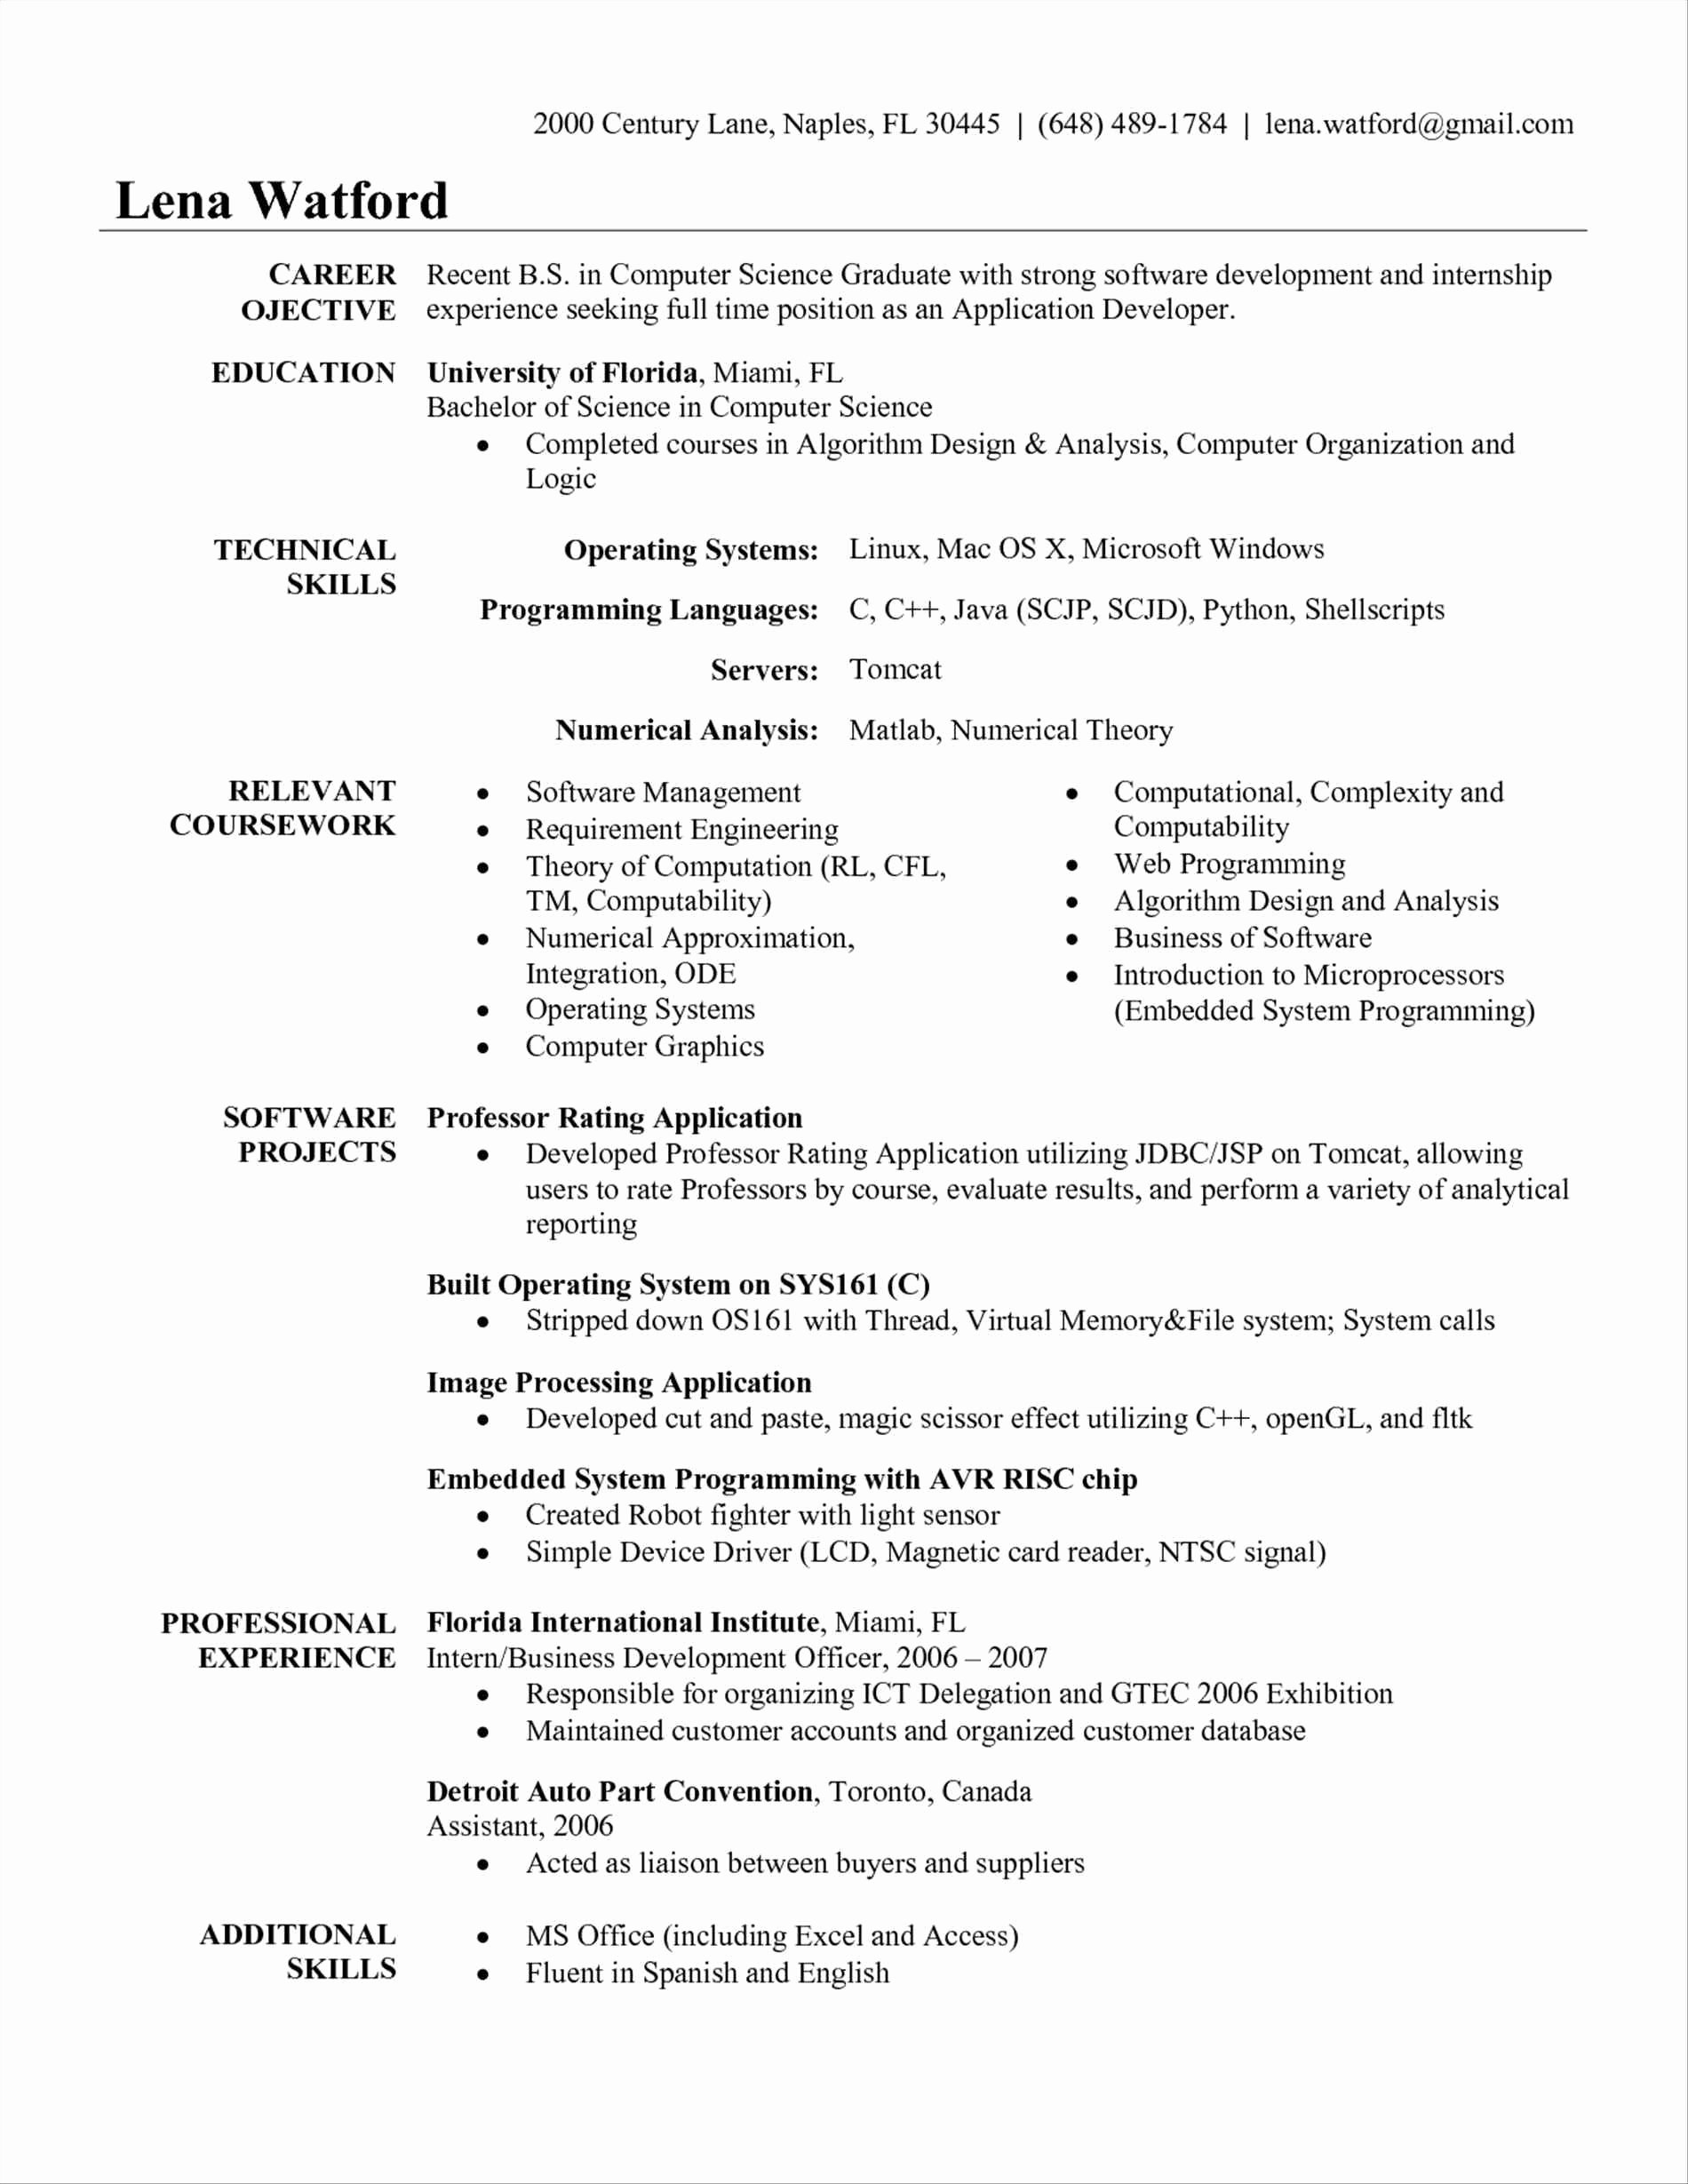 Sample Resume for software Engineer with 2 Years